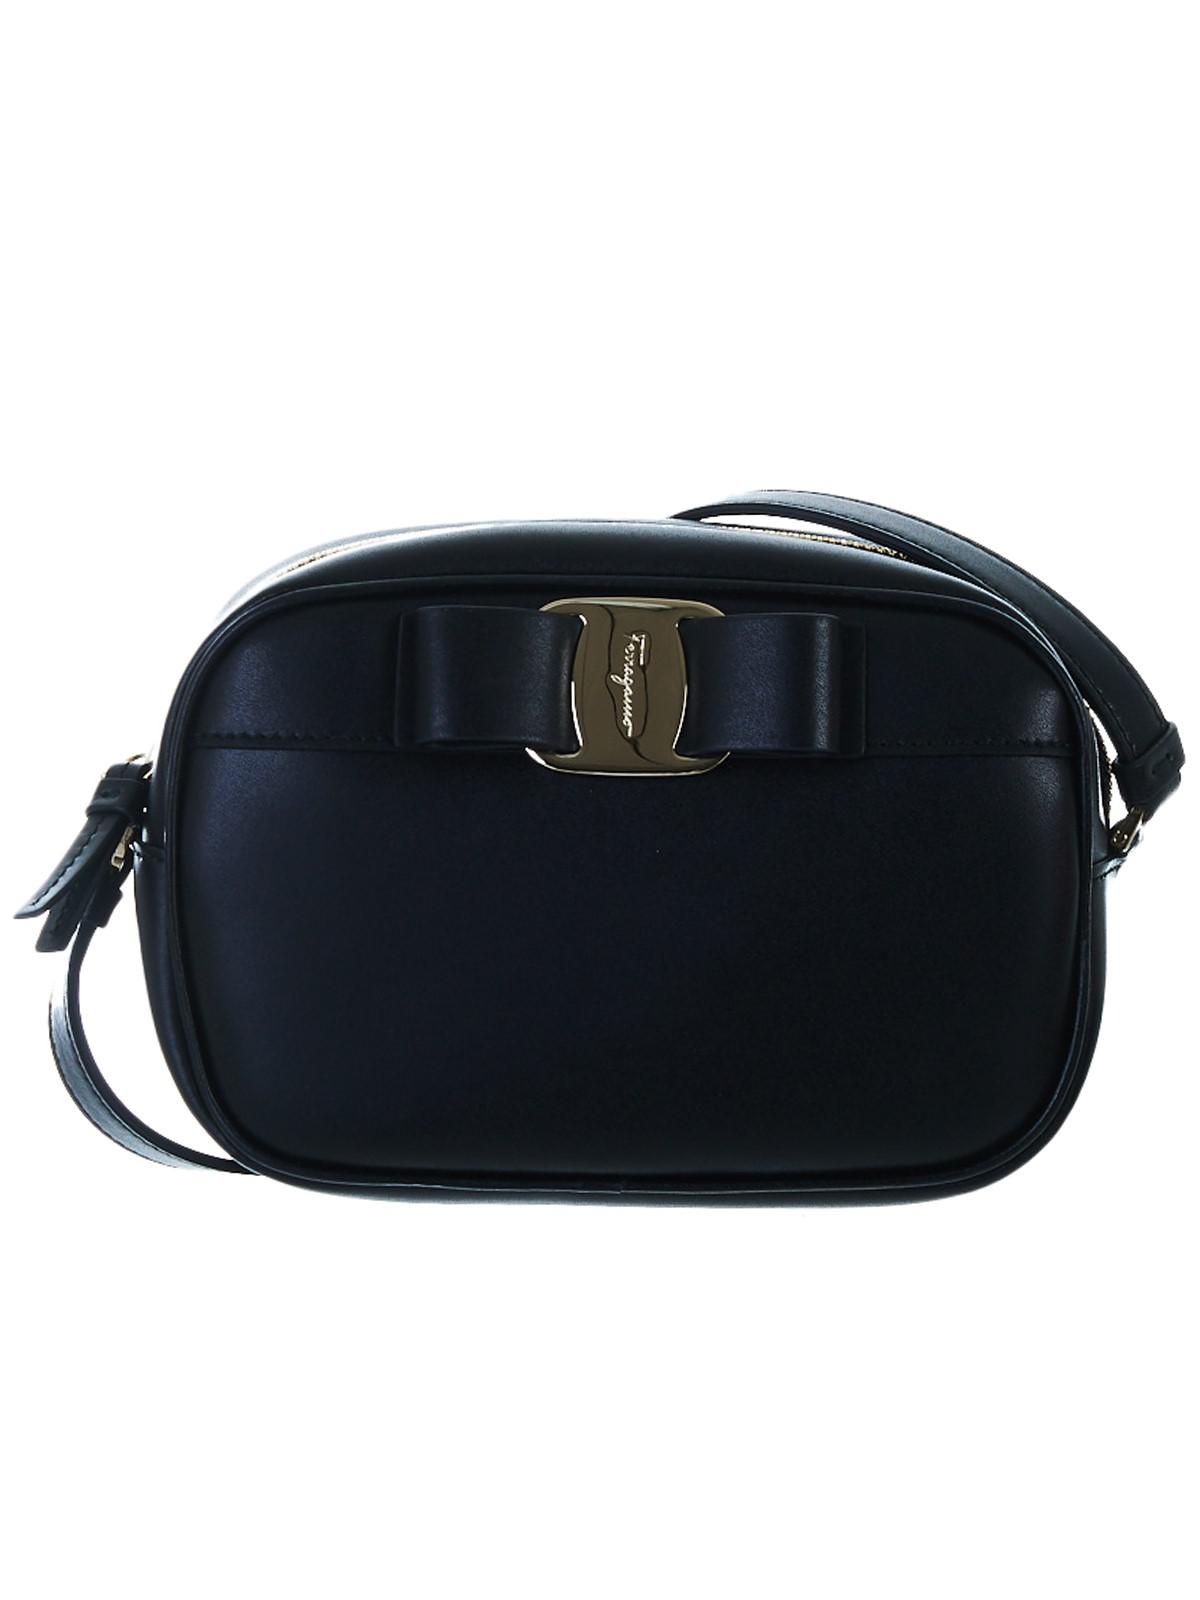 4c463f855abd Lyst - Ferragamo Black Vara Bag in Black - Save 1.9503546099290787%